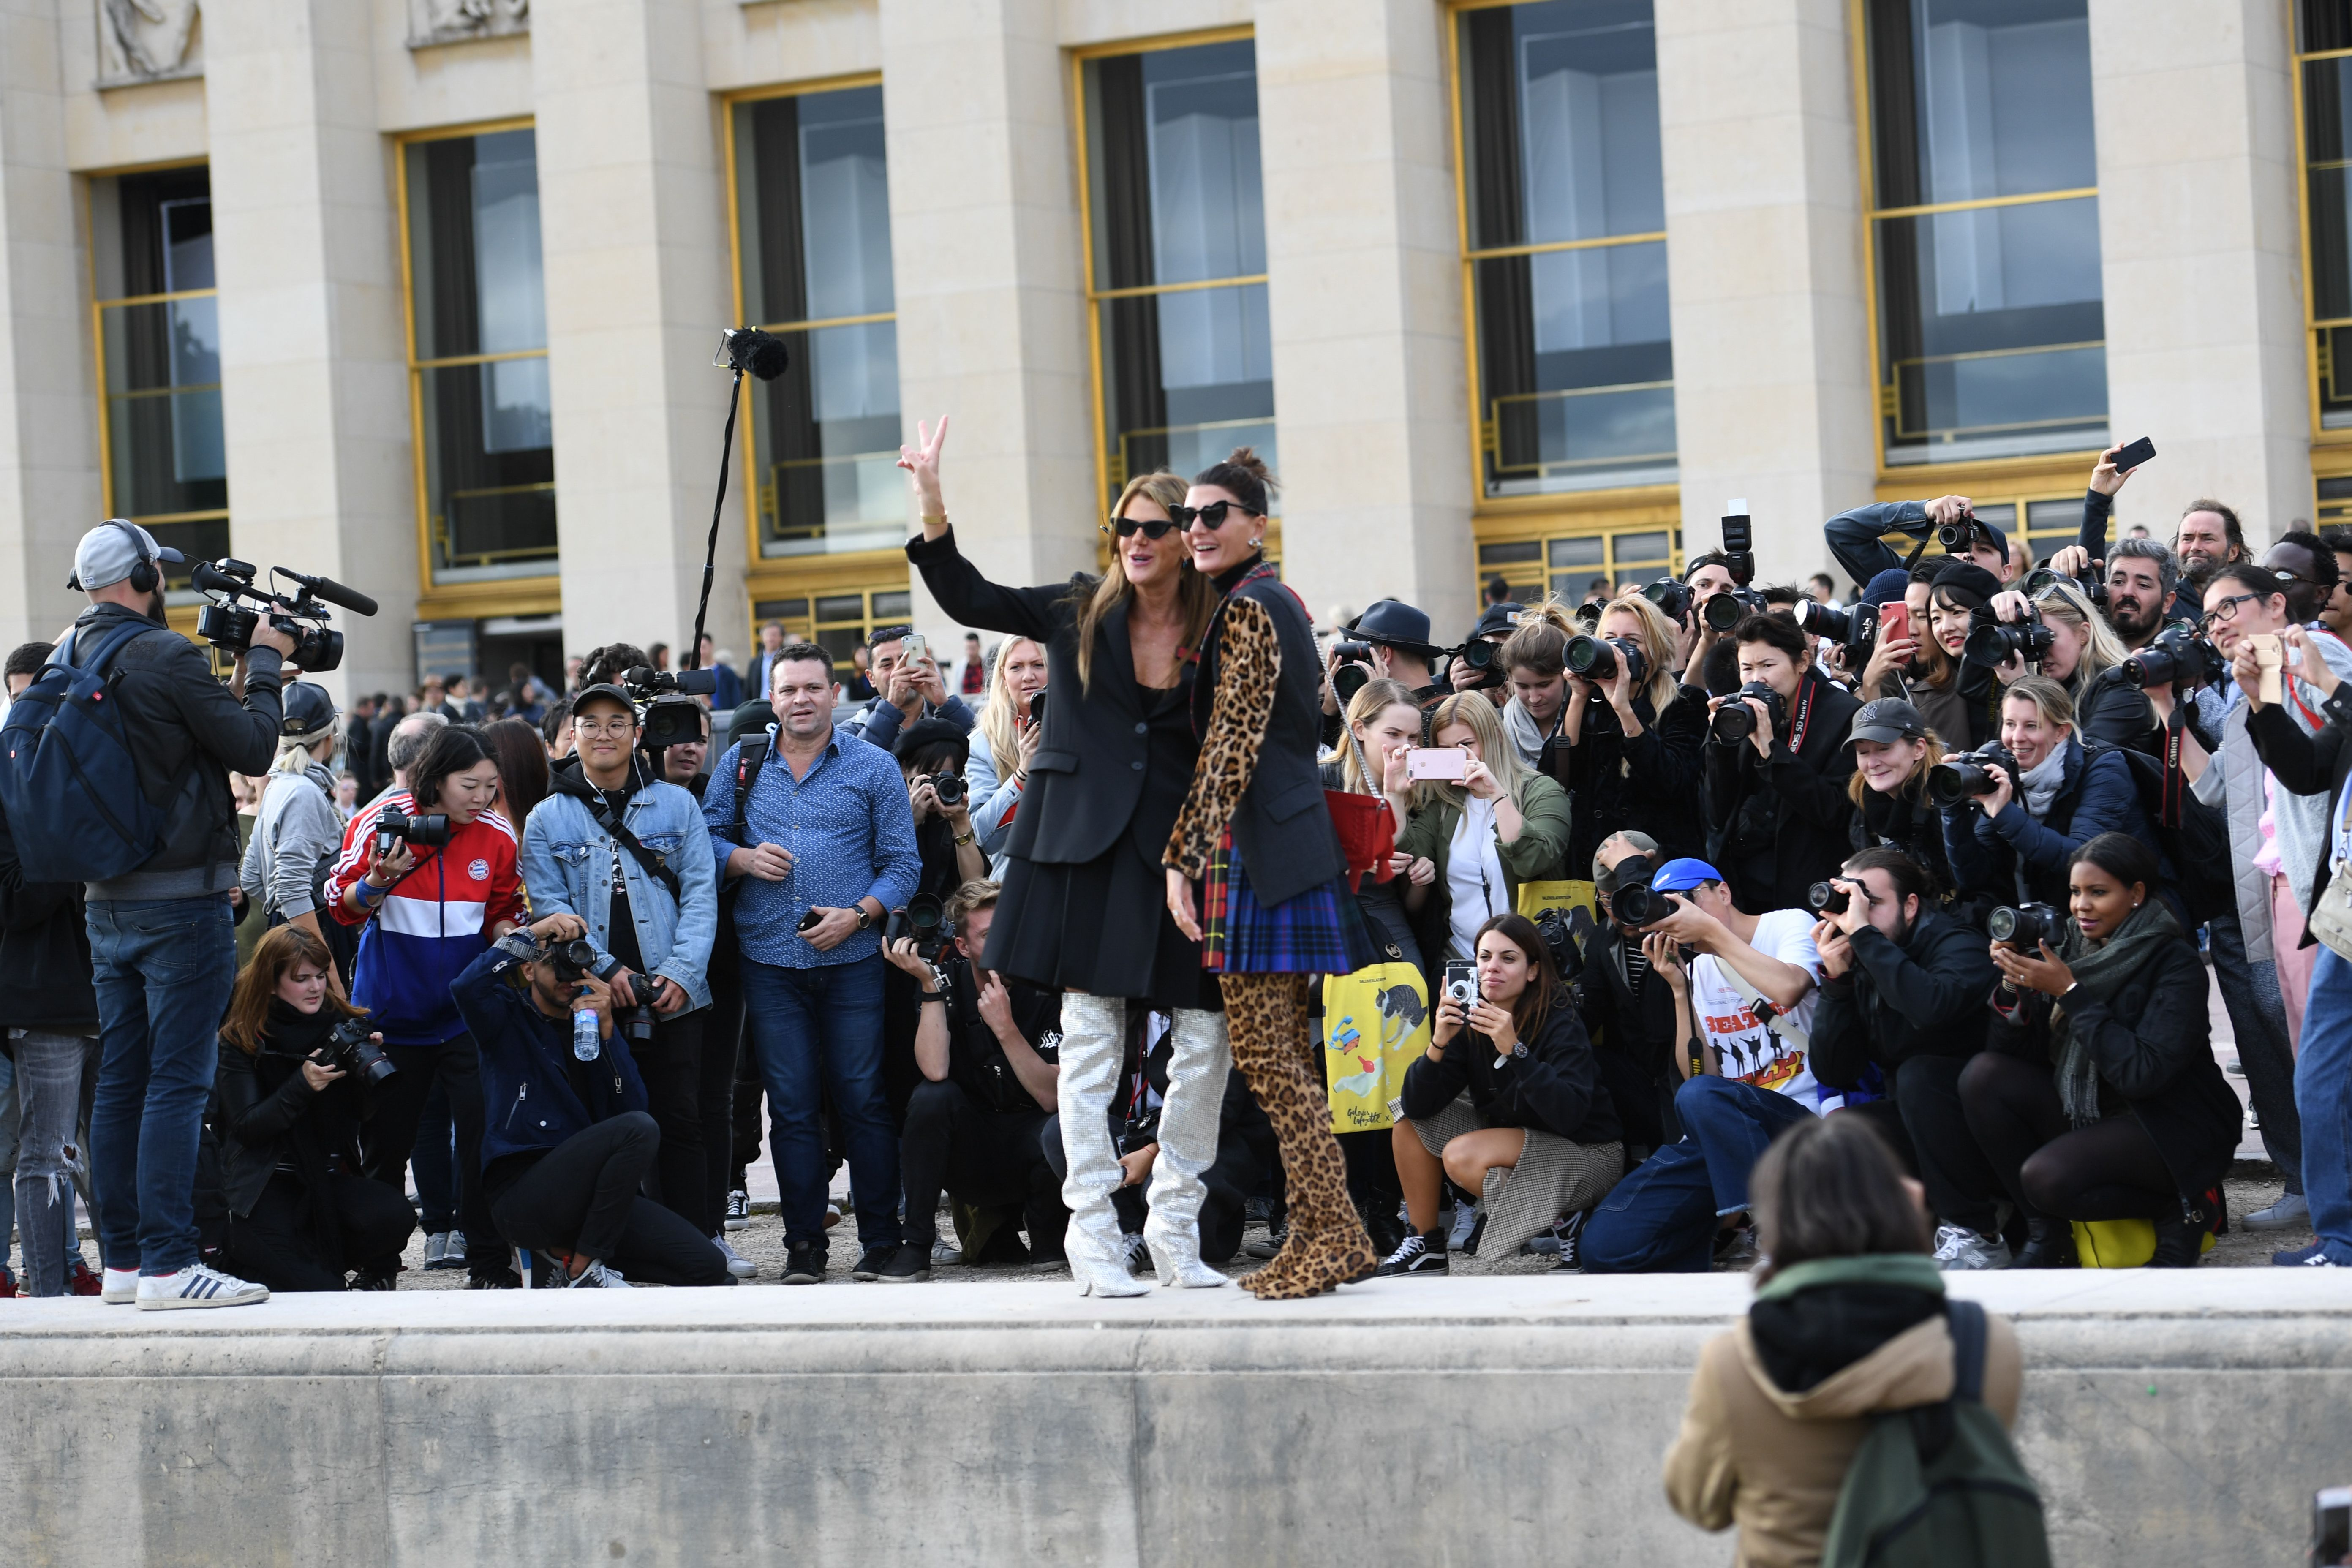 Anna Dello Russo and Giovanna BattagliaStreet Style, Spring Summer 2018, Paris Fashion Week, France - 02 Oct 2017